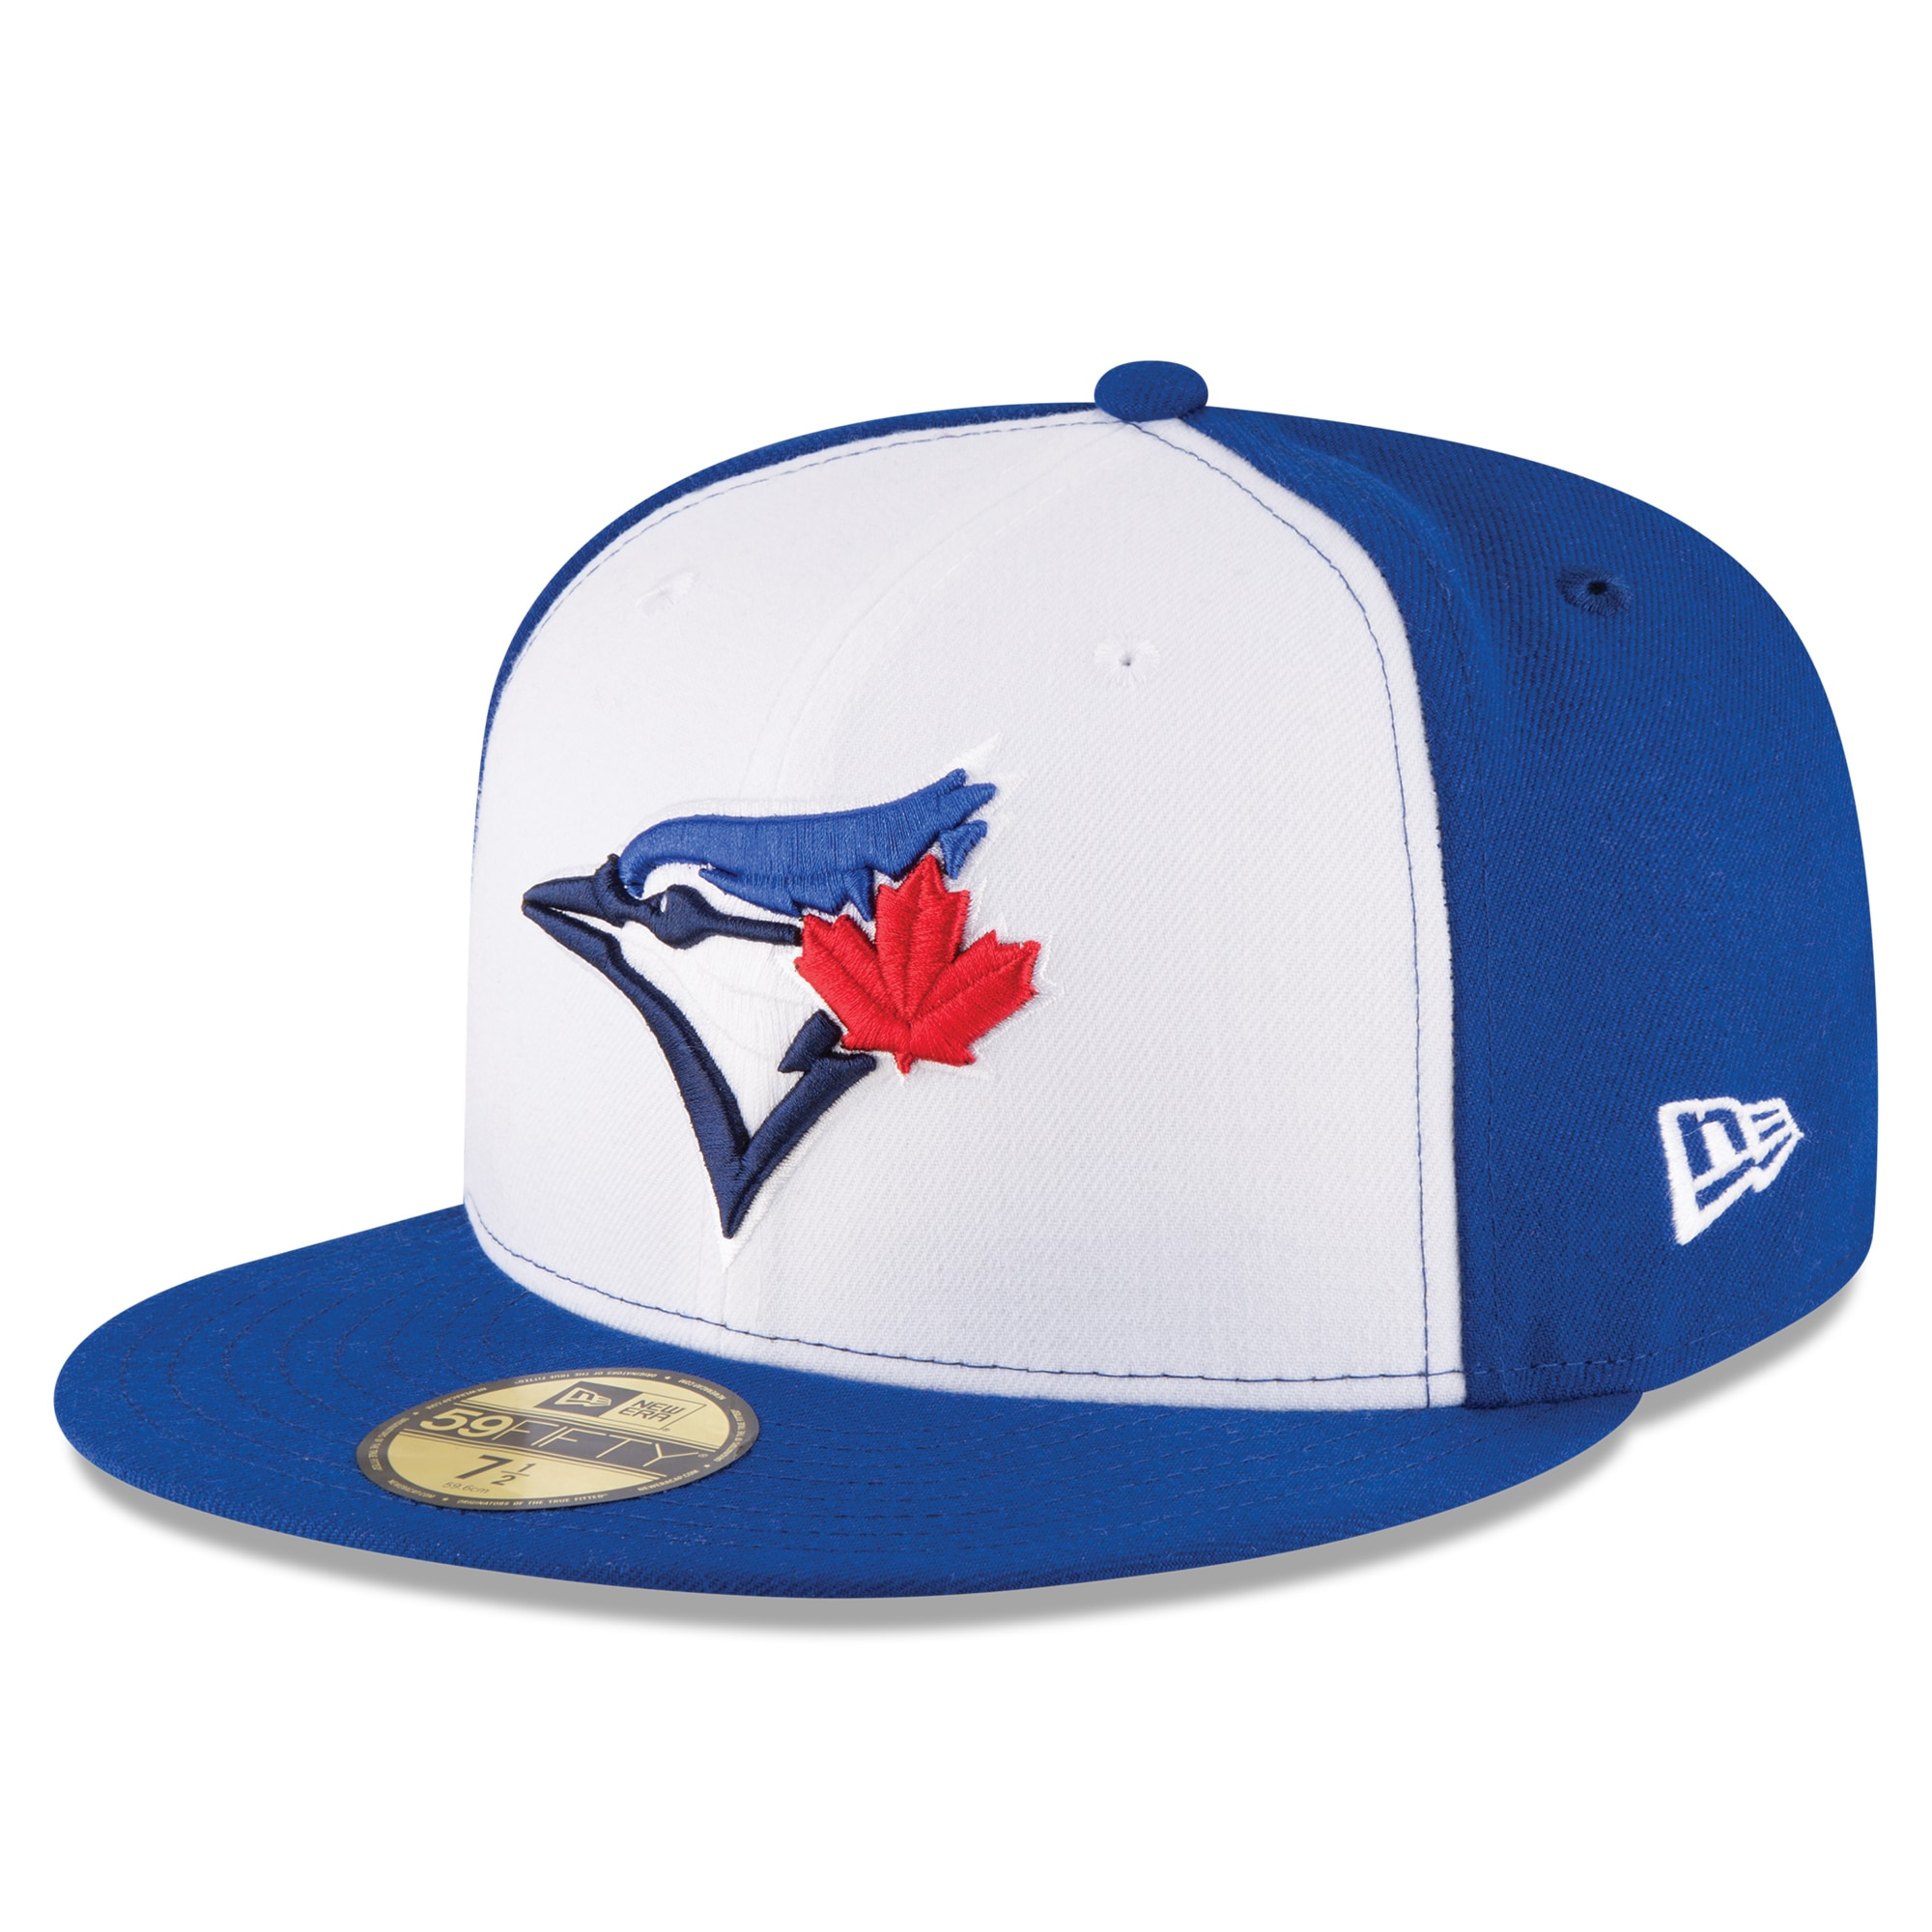 Toronto Blue Jays New Era 2017 Authentic Collection On-Field 59FIFTY Fitted Hat - White/Royal